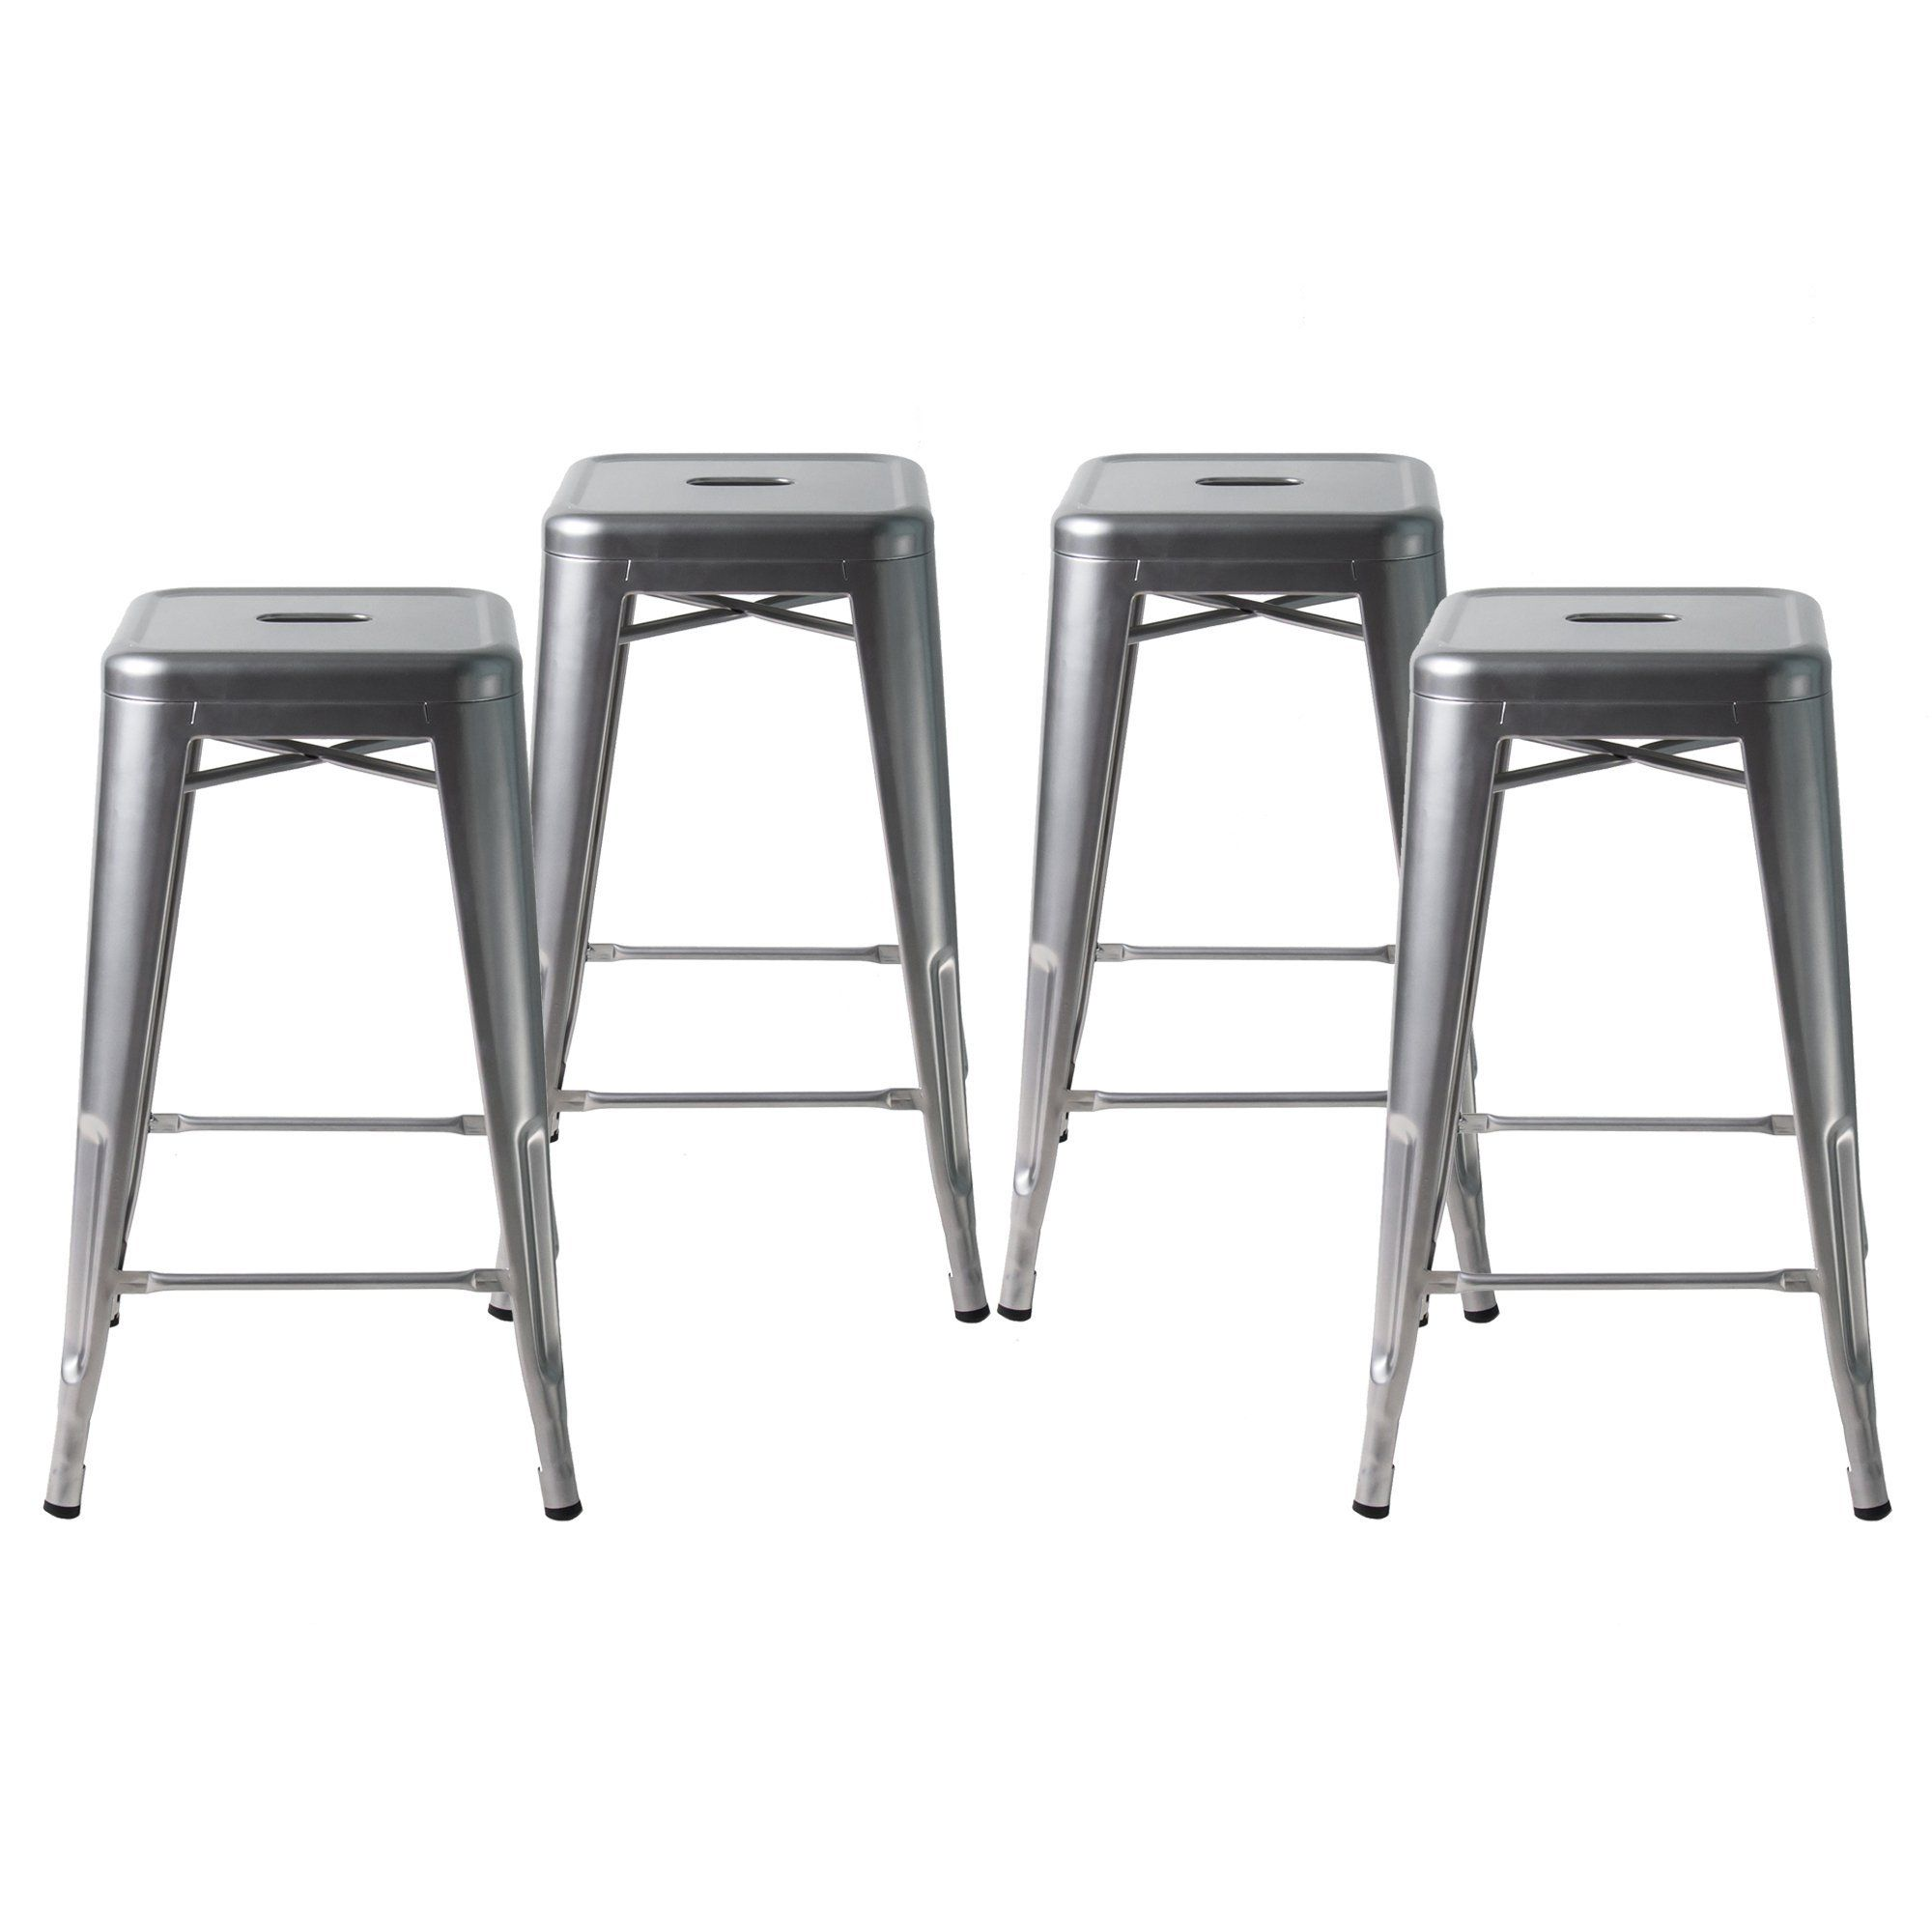 vintage best pictures rustic stool interior metal nice bar stools back industrial furniture with